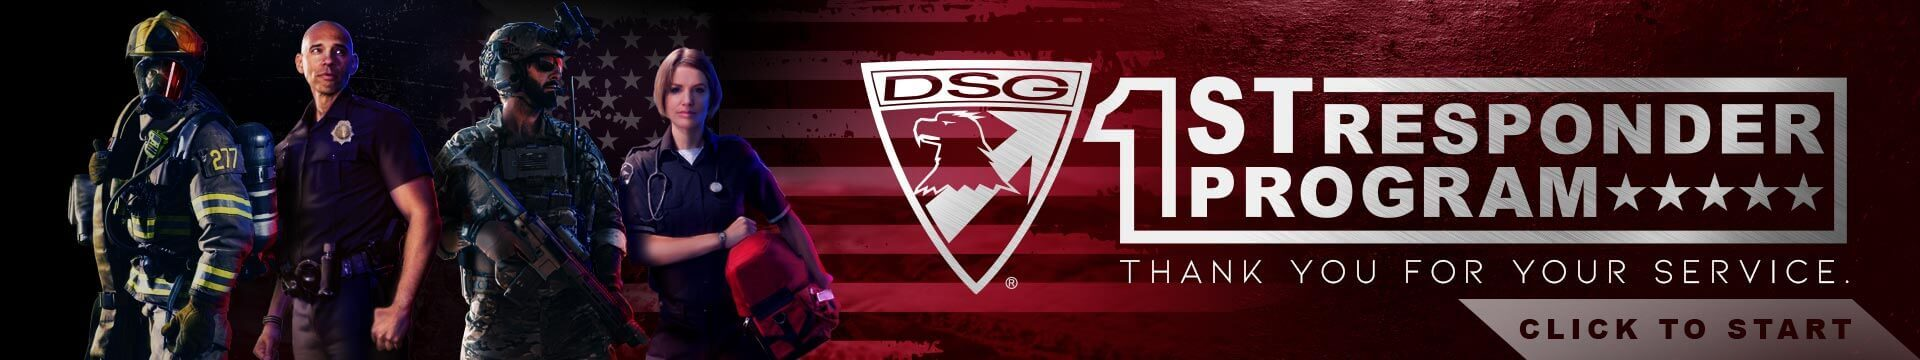 First Responders Discount Program at DSG Arms